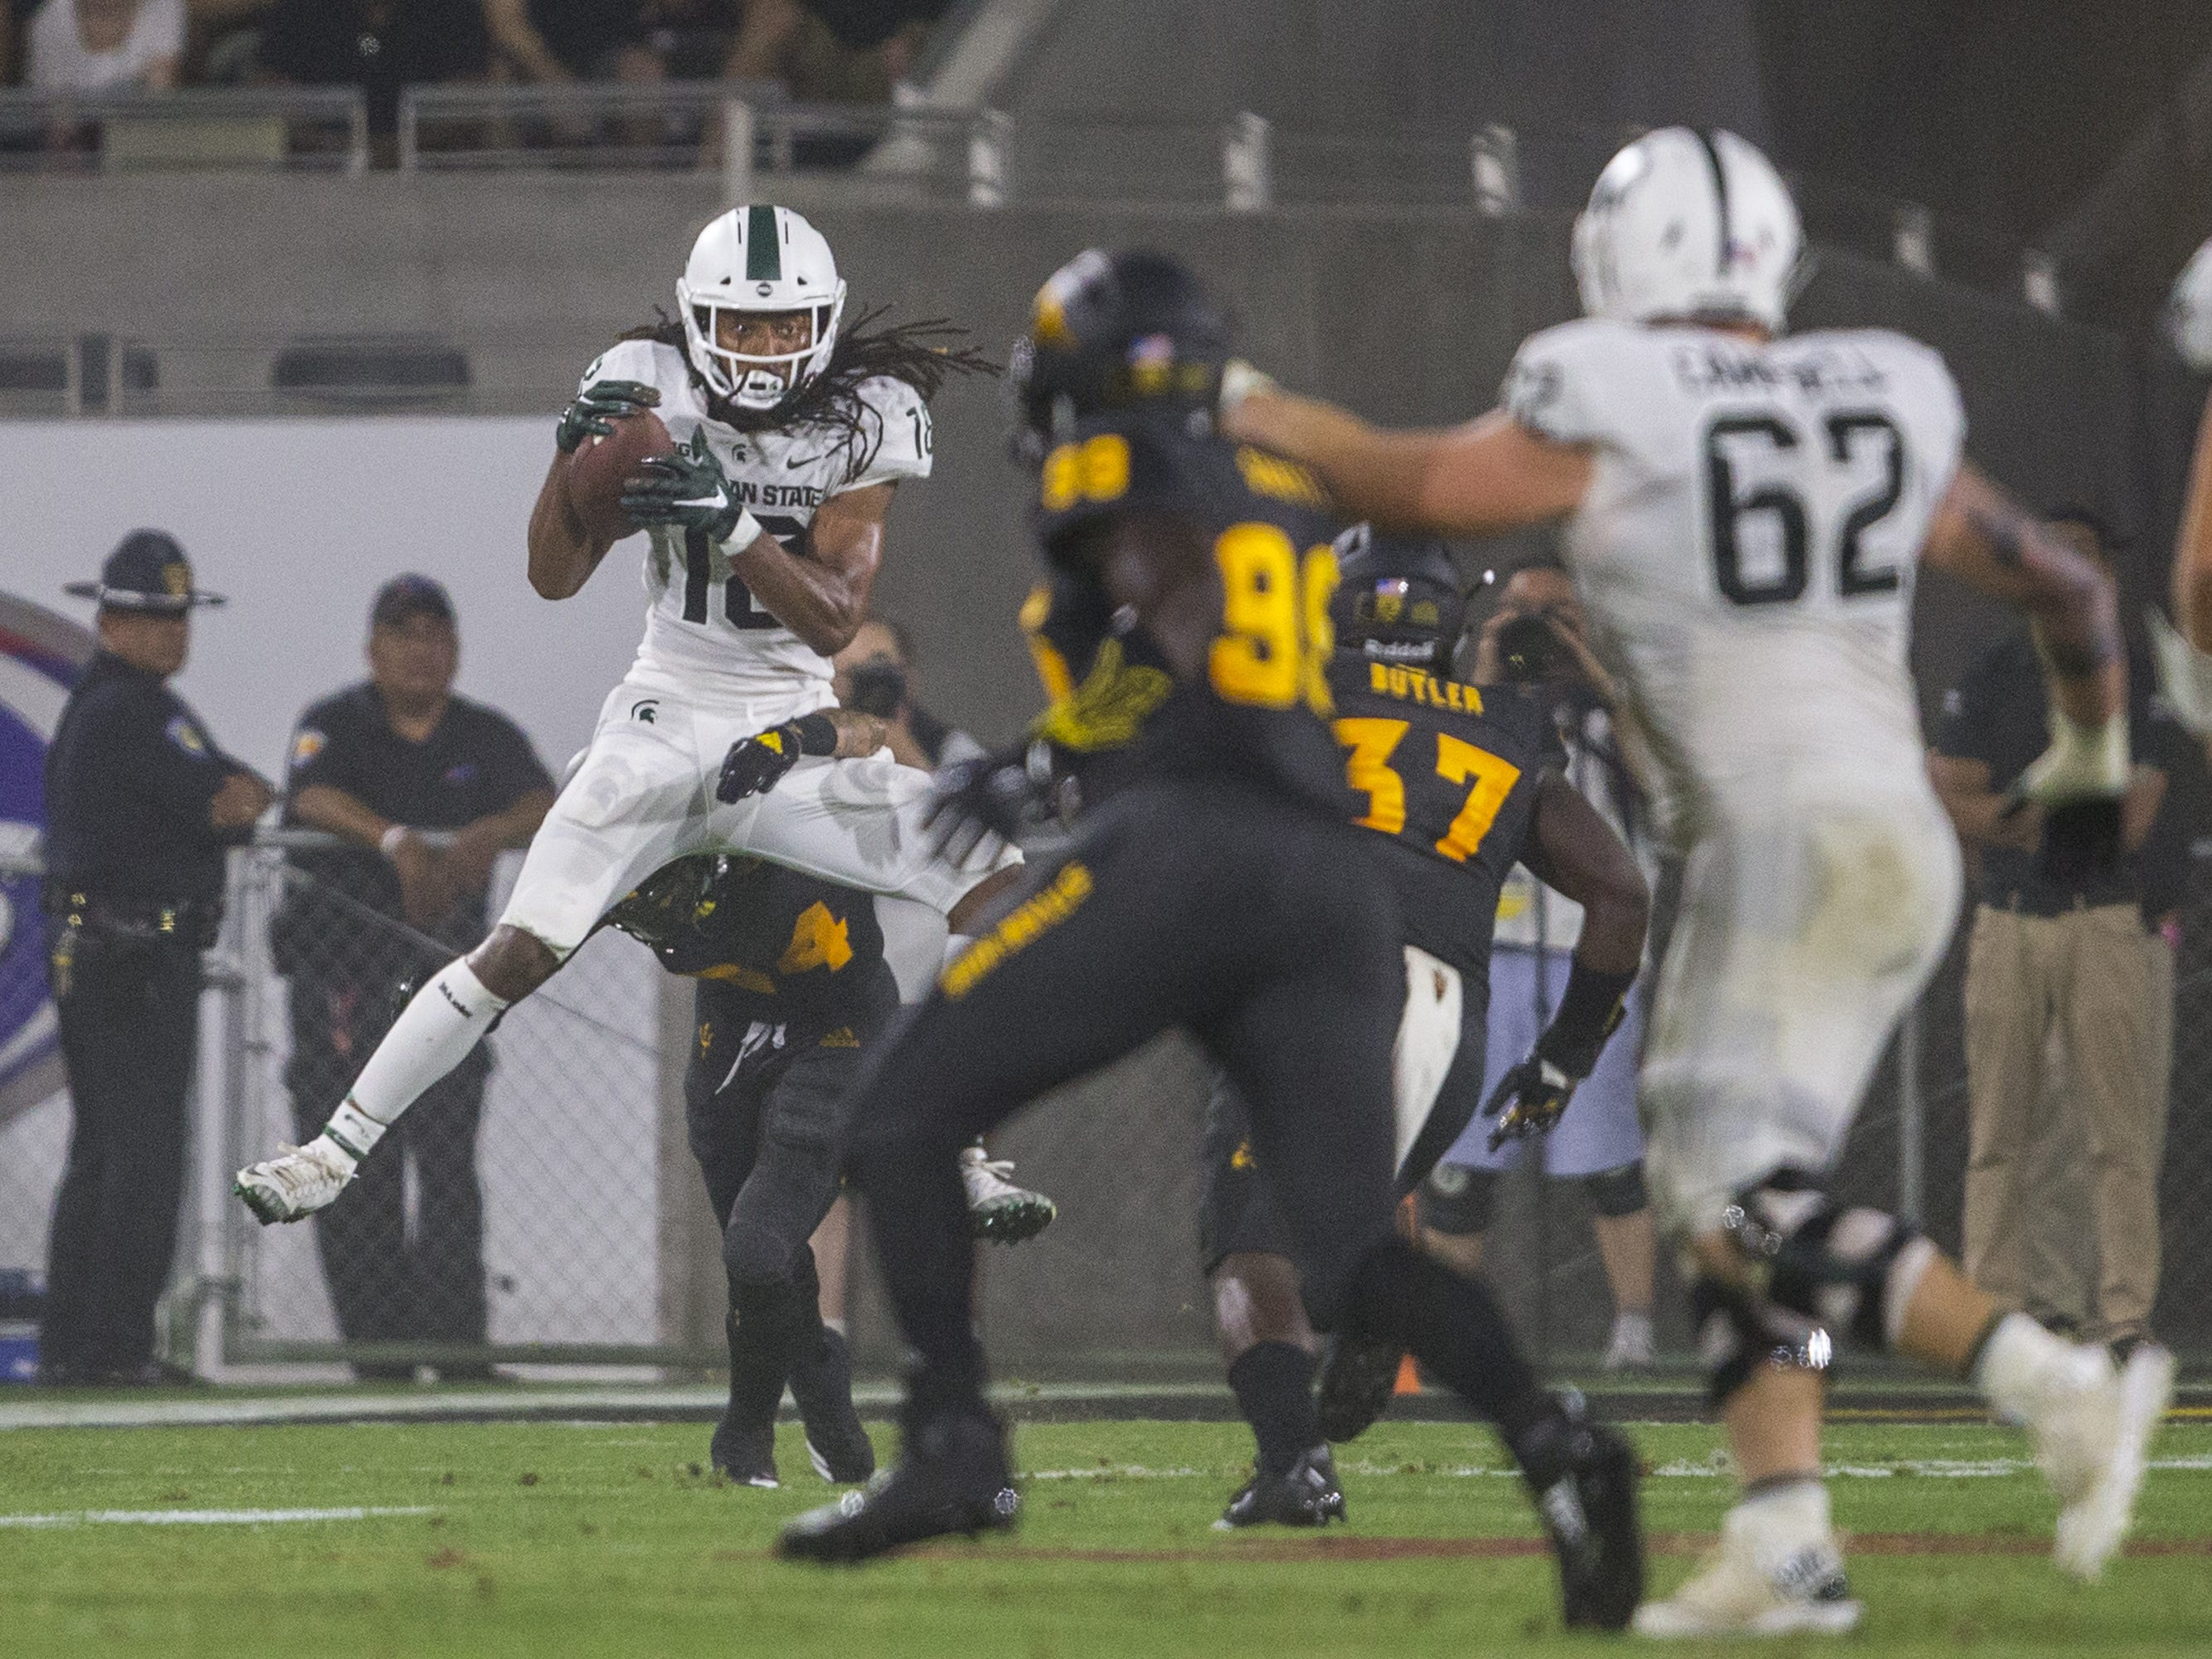 Michigan State's Felton Davis III makes a catch against Arizona State in the 3rd quarter on Saturday, Sept. 8, 2018, at Sun Devil Stadium in Tempe, Ariz.